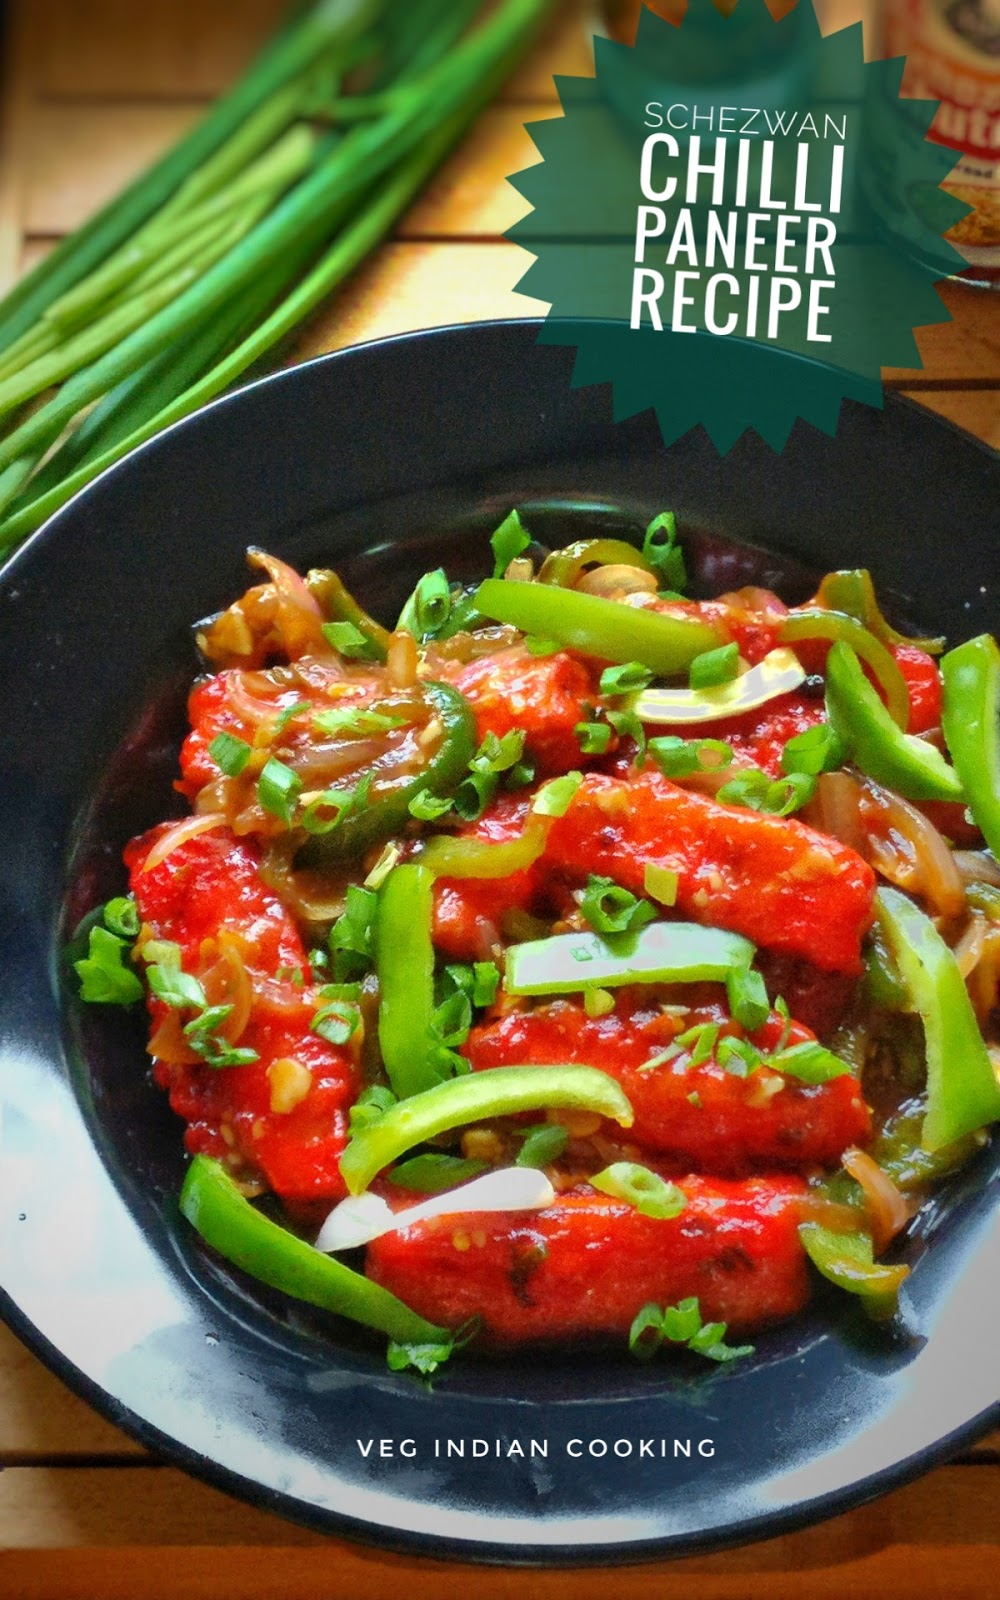 Veg indian cooking restaurant style schezwan chilli paneer how to make schezwan chilli paneer restaurant style indian chinese crispy paneer schezwan recipe indo chinese chings paneer schezwan paneer chilly dry forumfinder Image collections